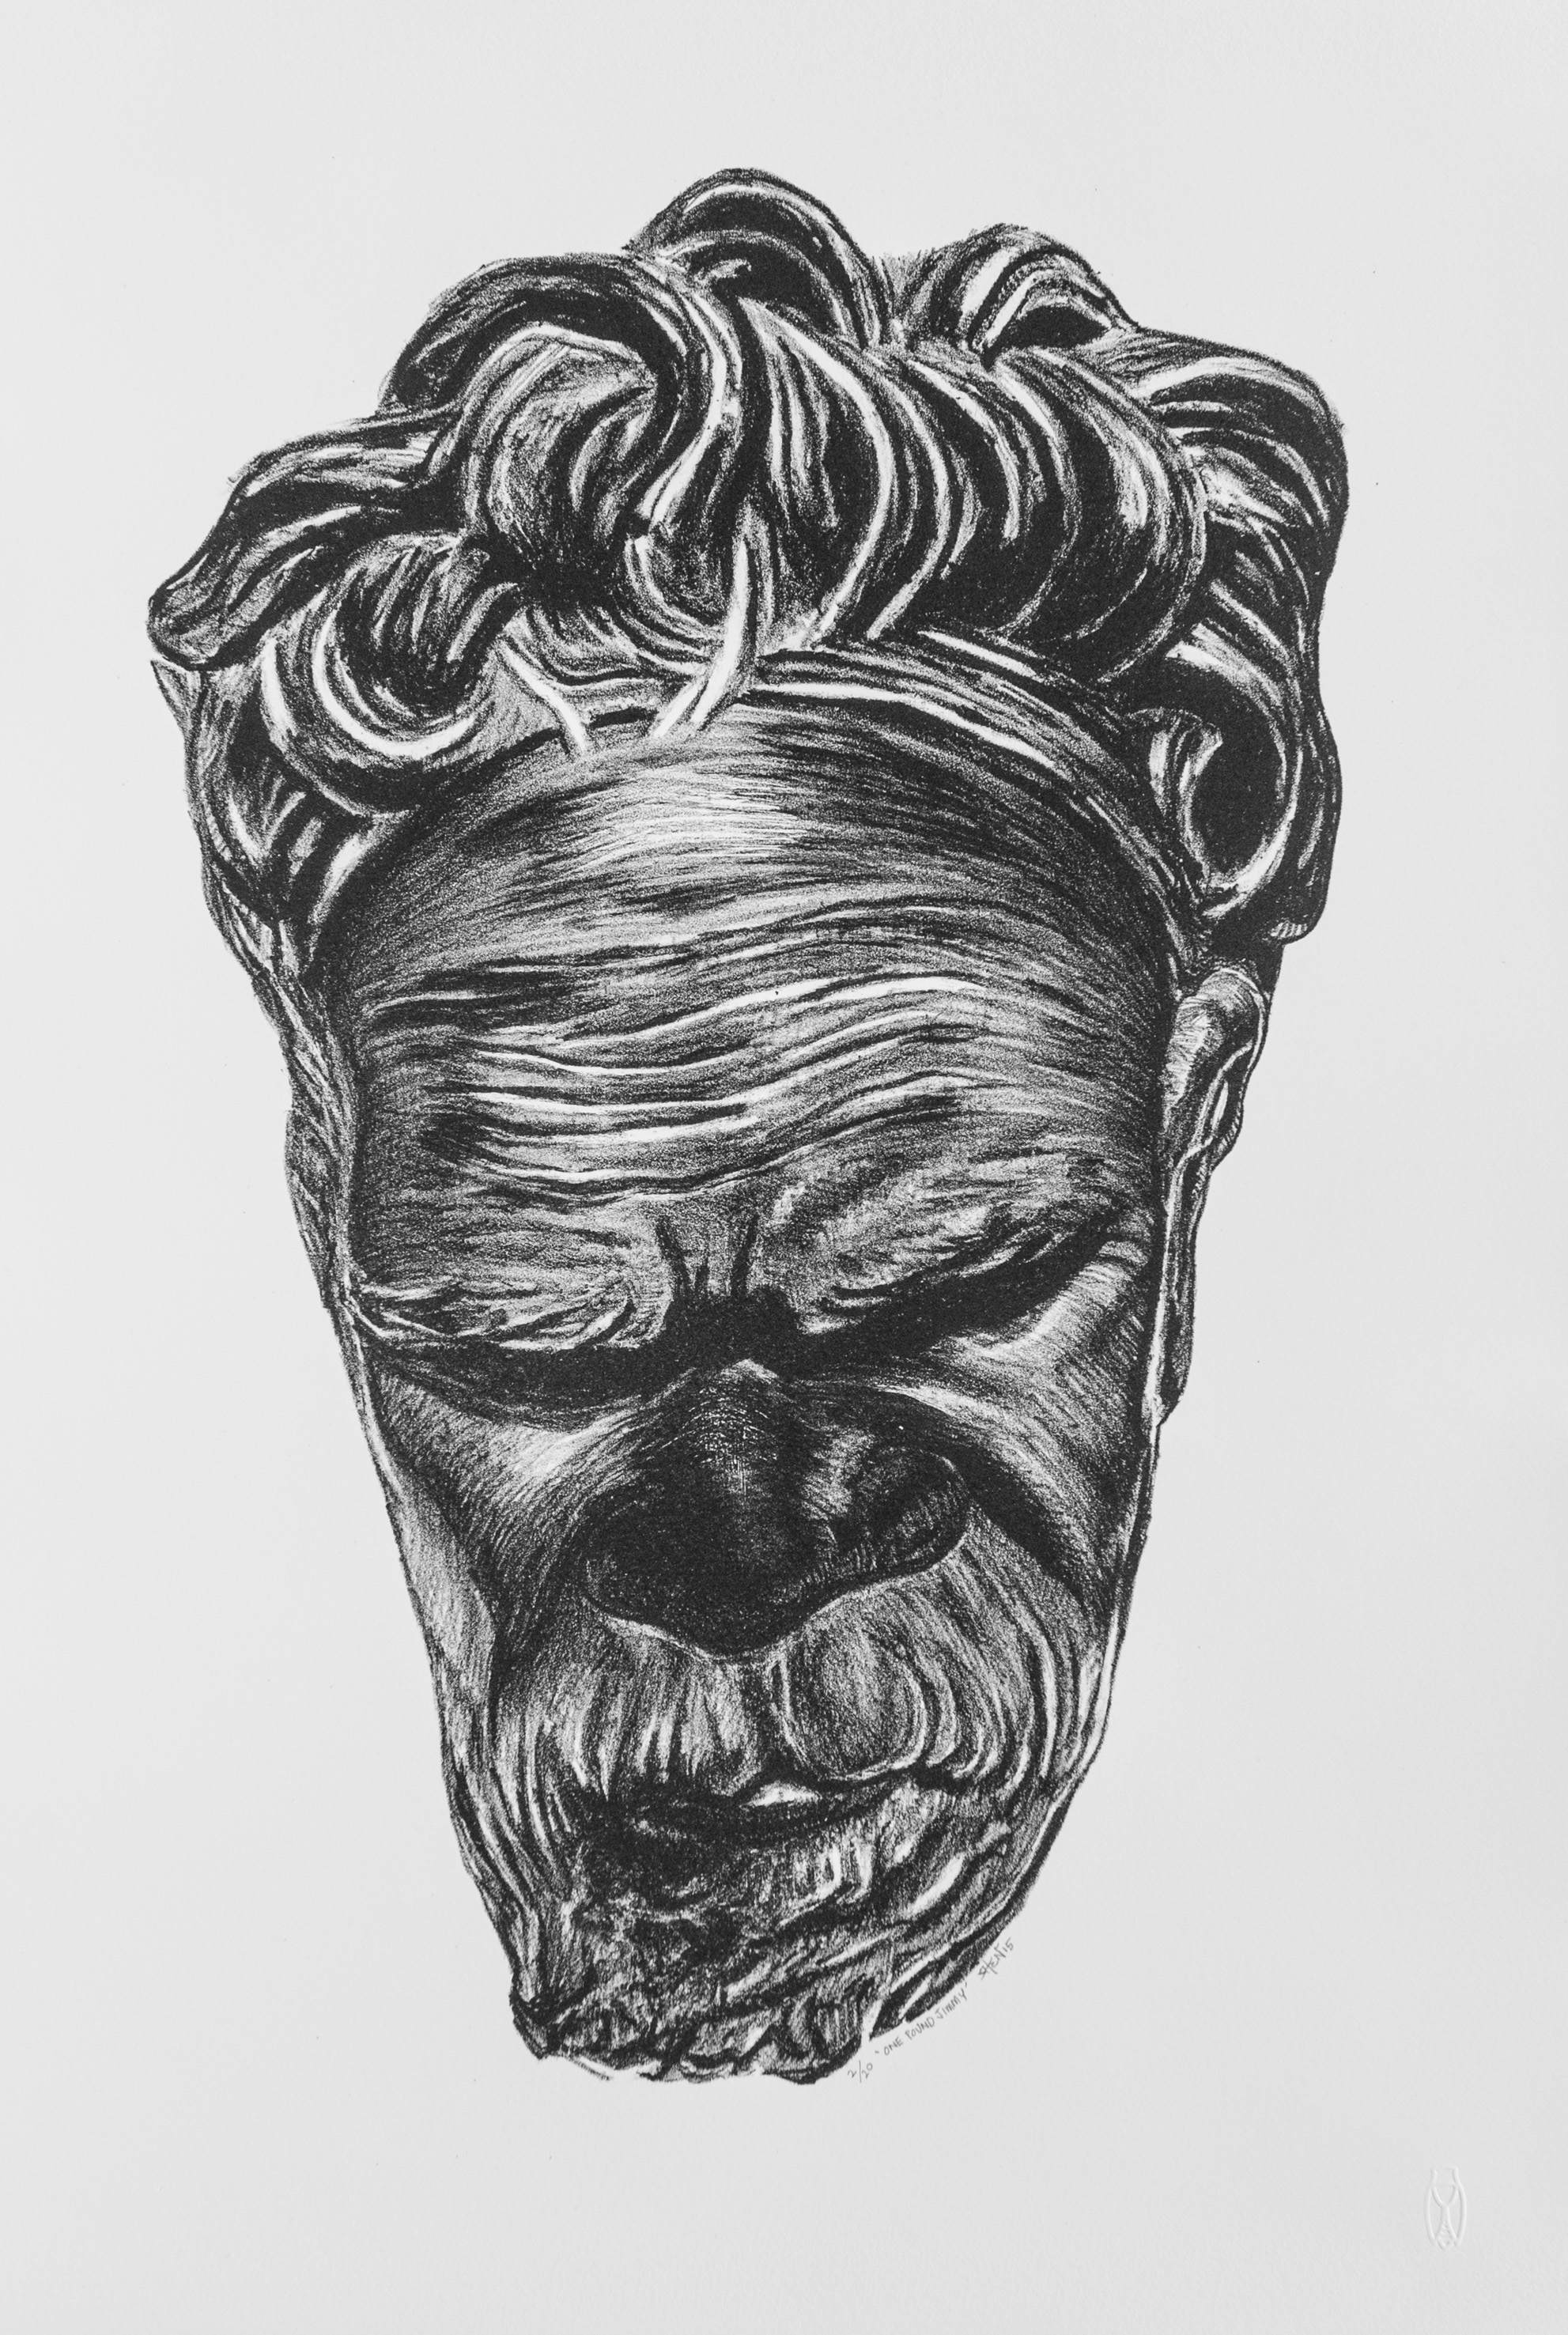 'One Pound Jimmy', 2015 <br>Lithograph, 56 x 38 cm each, Edition of 20 + 1AP